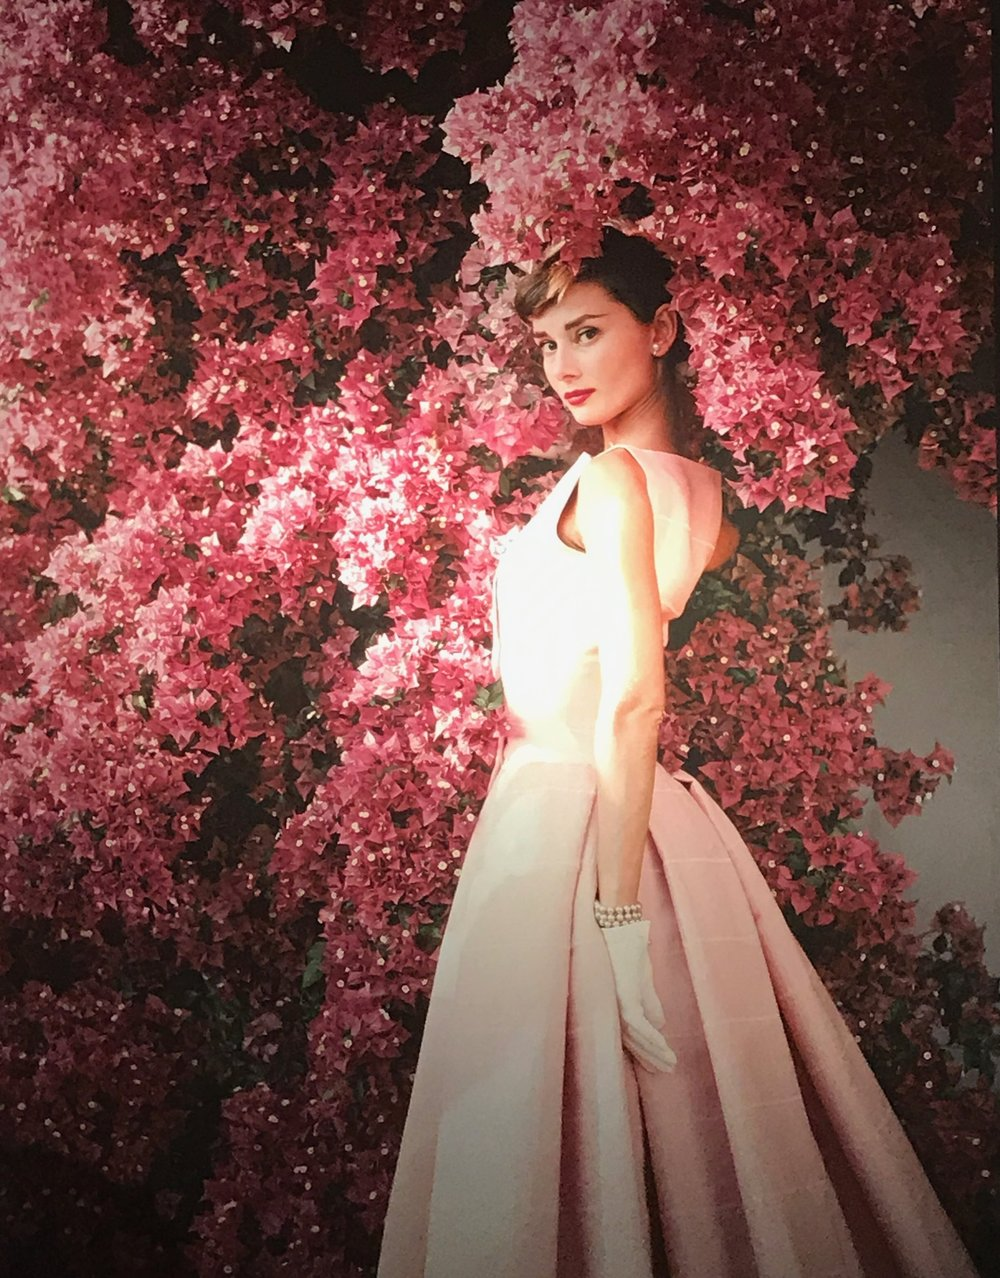 Audrey Hepburn exhibition at Christie's London 2017